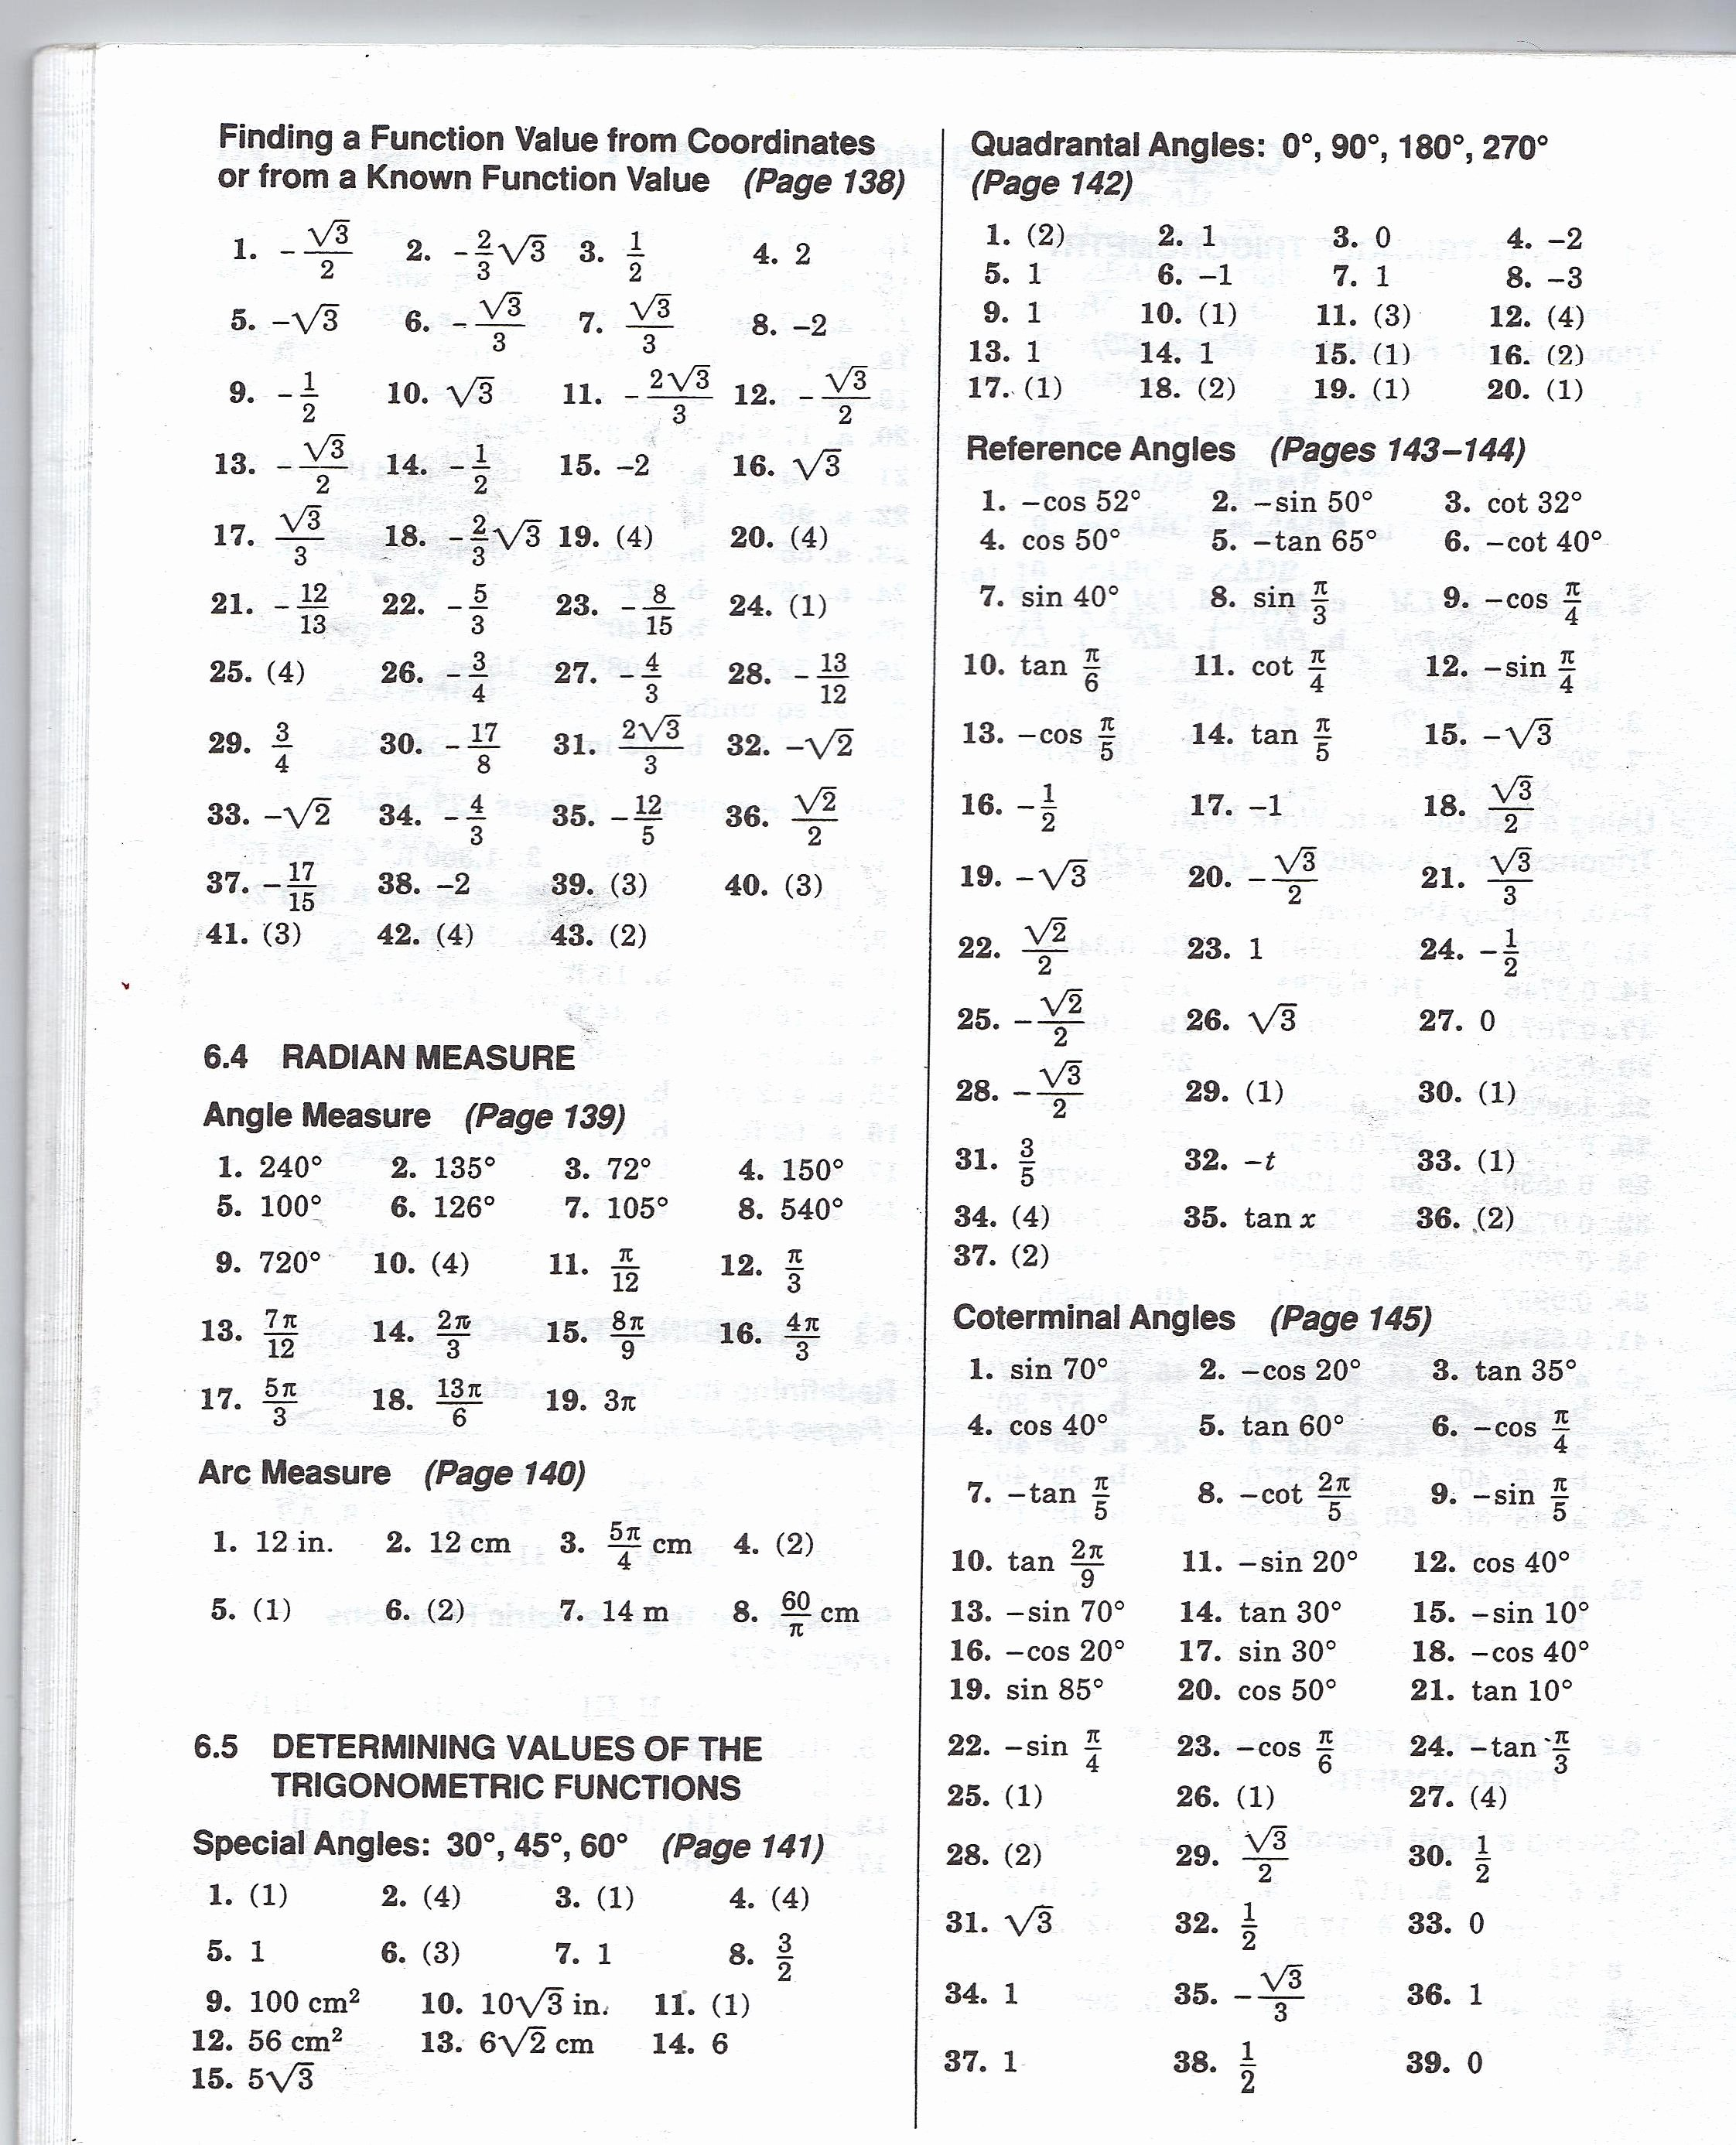 Composition Of Functions Worksheet Answers Awesome Precalculus Position Functions Worksheet Answers the